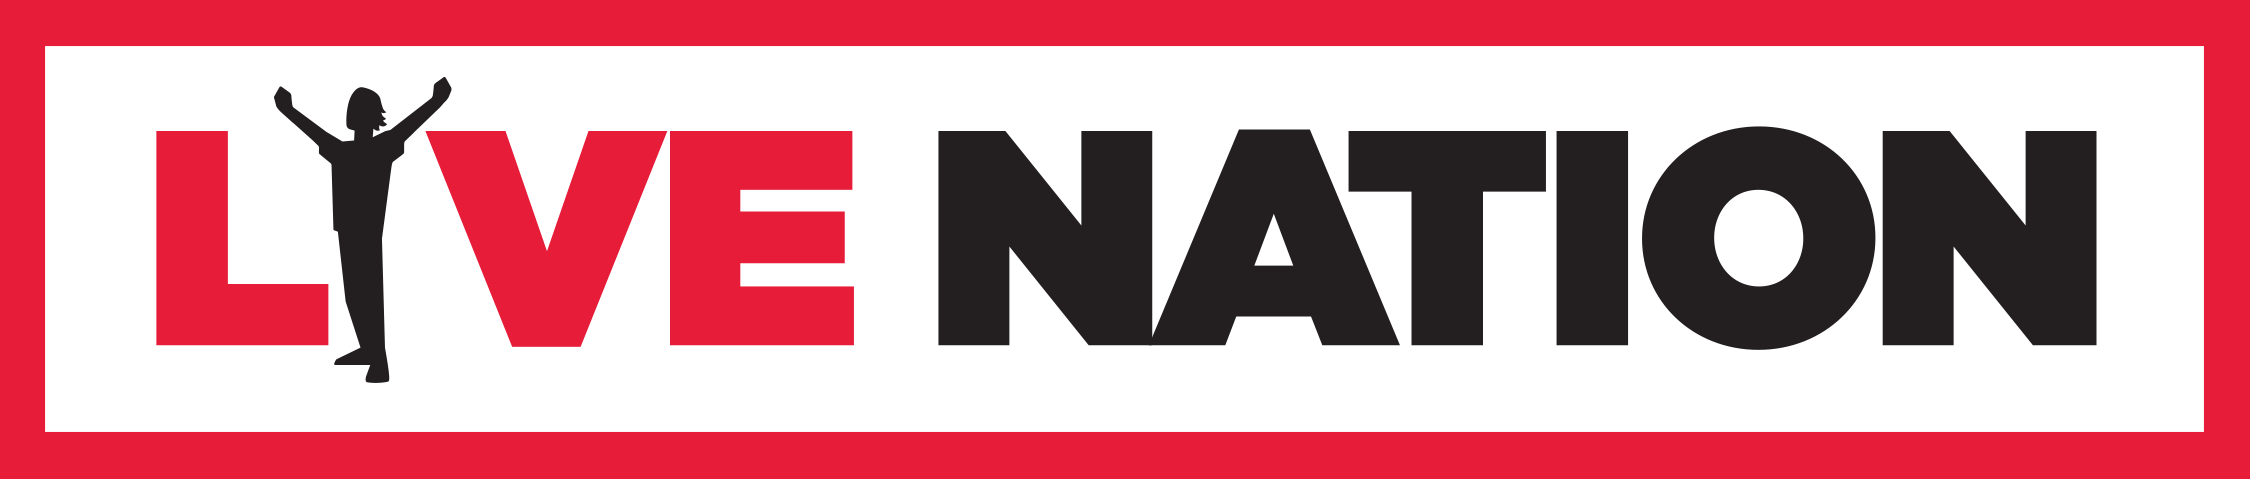 Live Nation | Live Nation Entertainment Careers